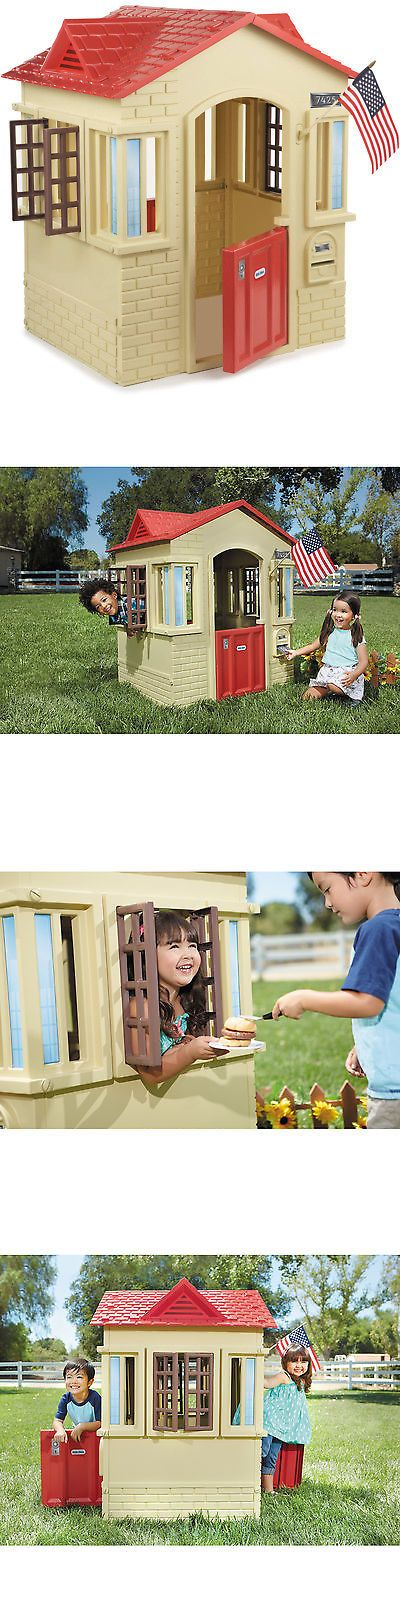 Permanent Playhouses 145995: Little Tikes Cape Cottage Playhouse, Tan -> BUY IT NOW ONLY: $129.99 on eBay!